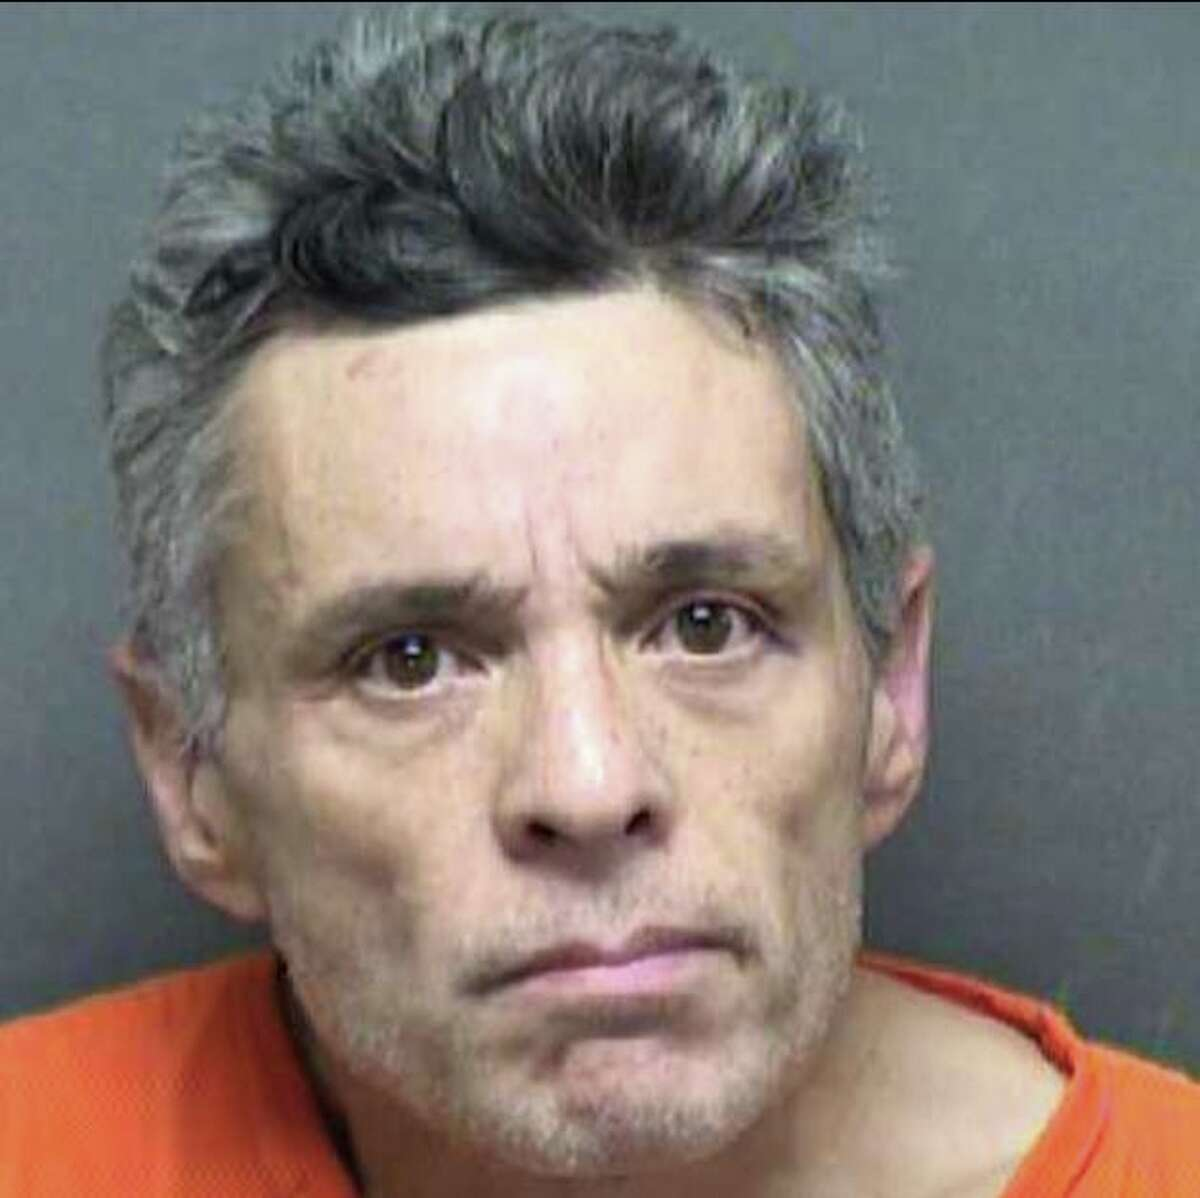 Mark Anthony Wong was arrested on suspicion of murdering his cellmate while being booked into the Bexar County Jail.